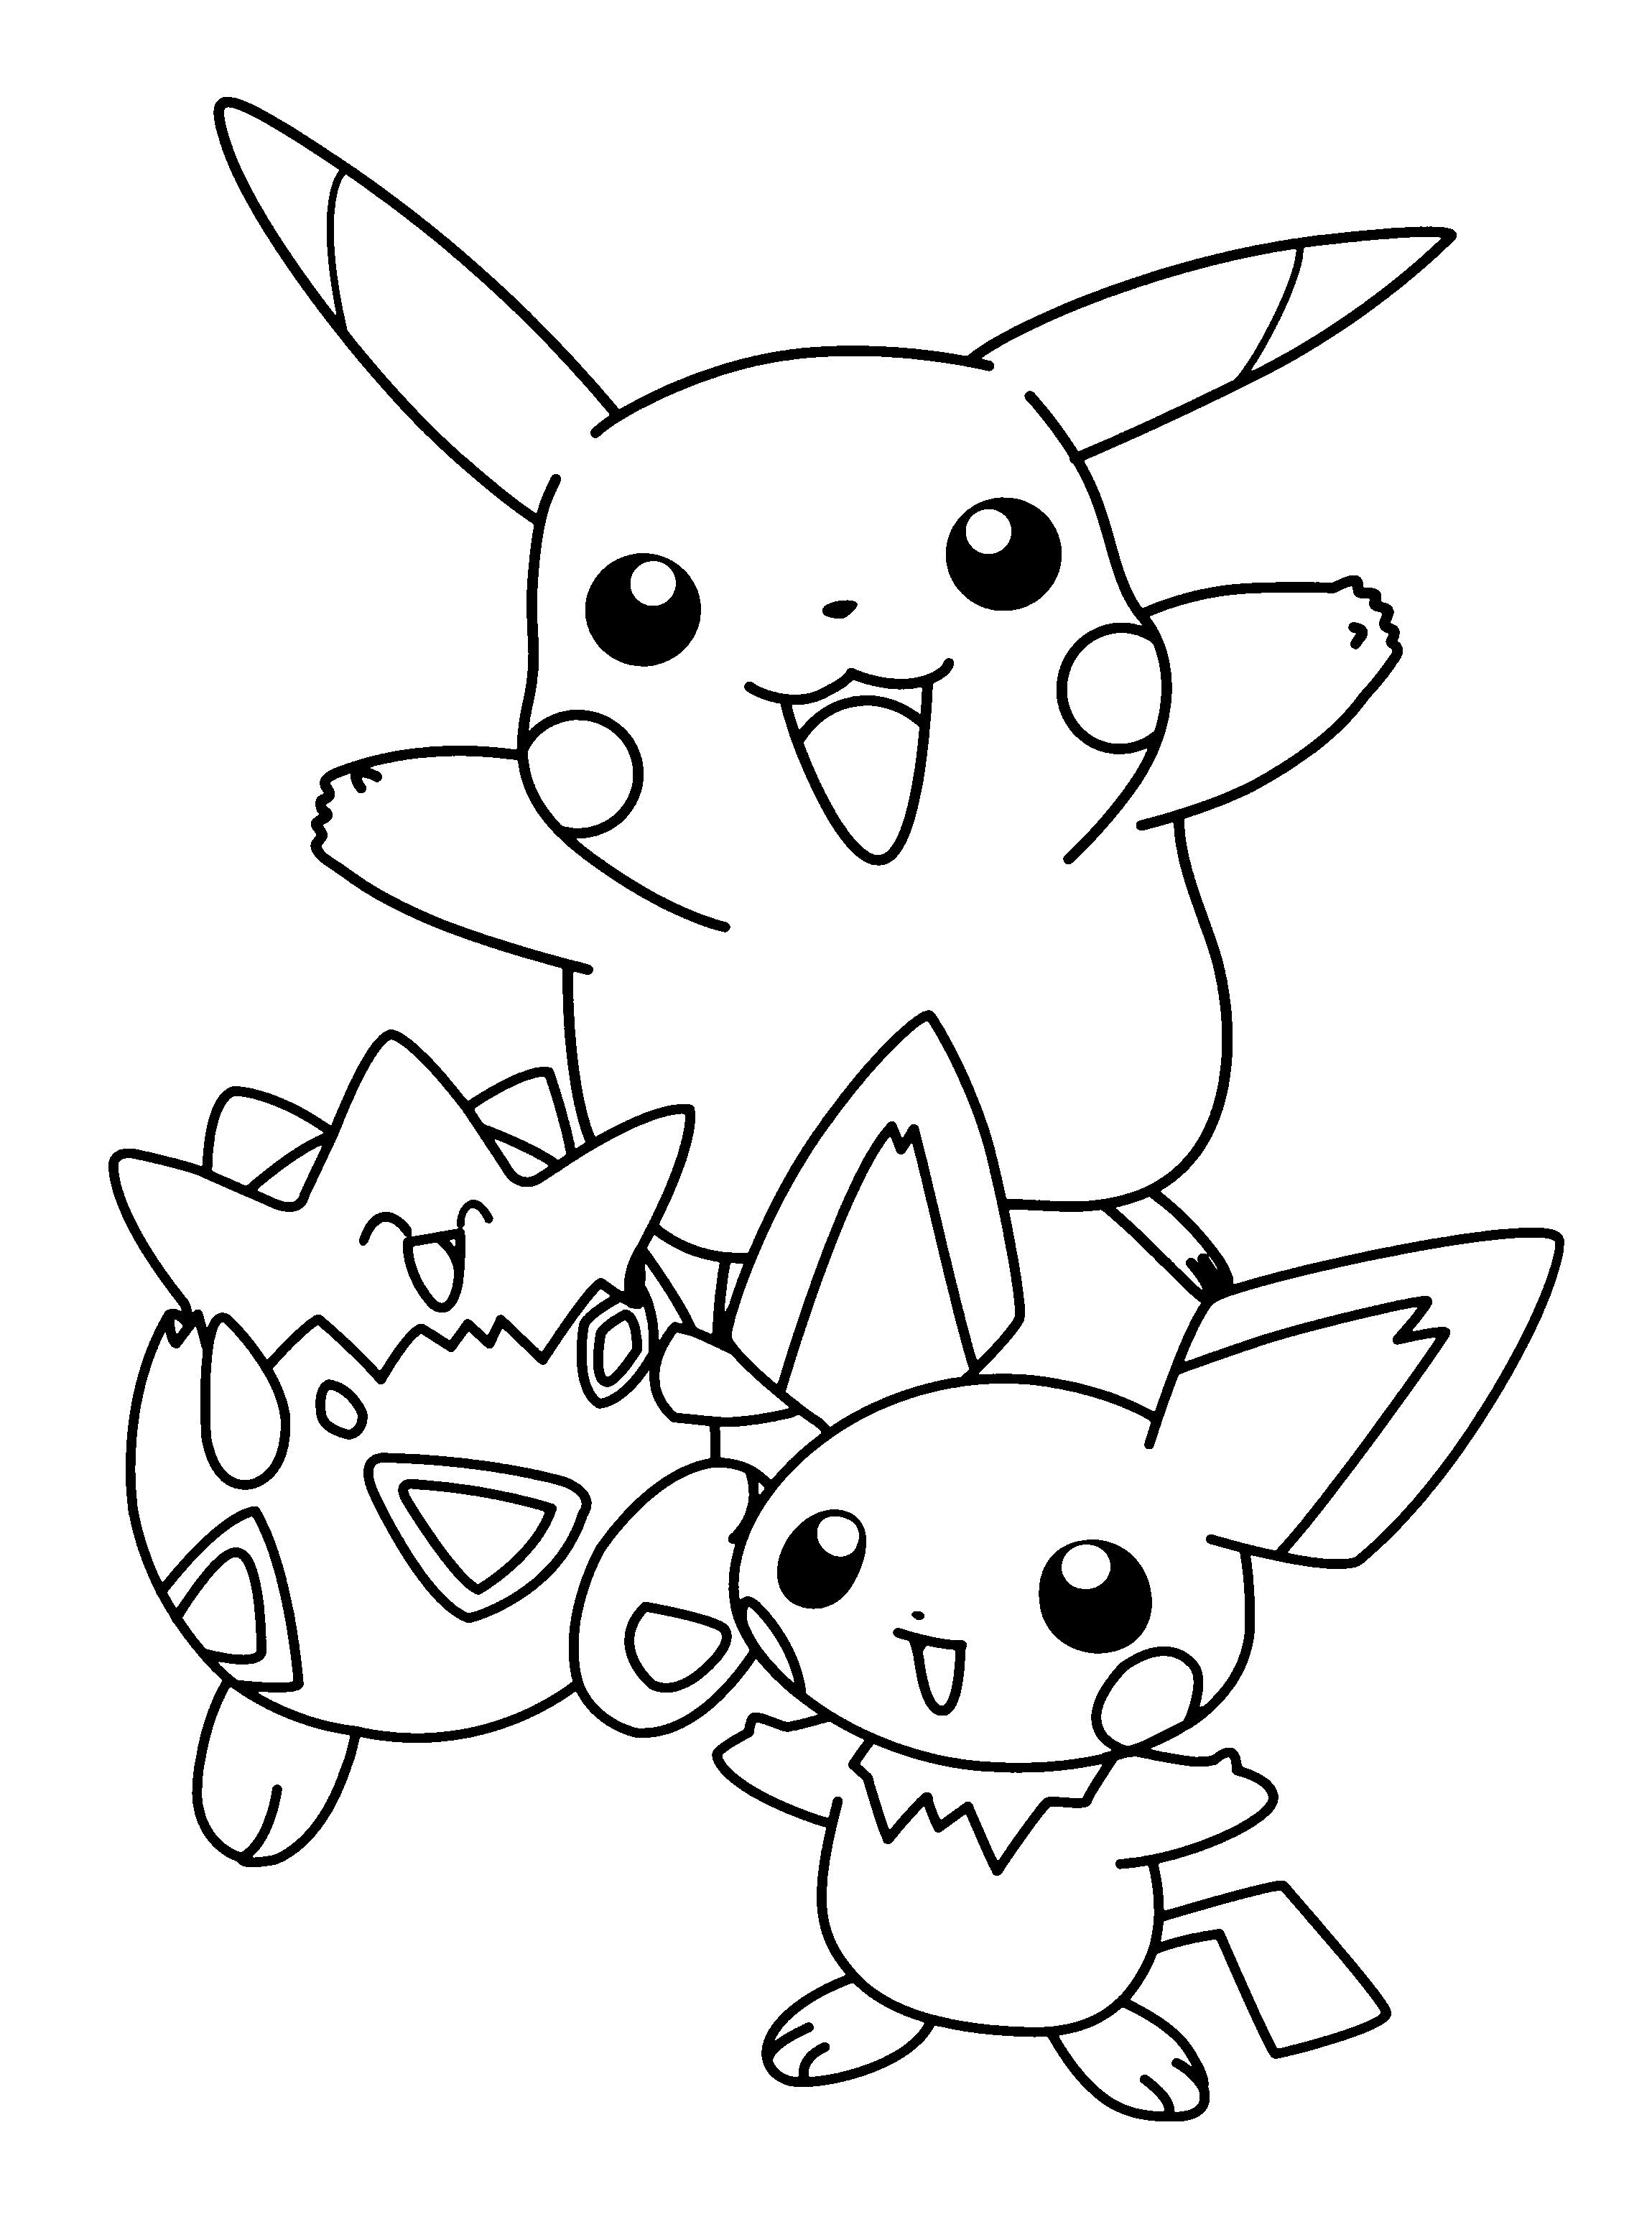 Pokemon Coloring Pages Wartortle – From the thousands of pictures on ...